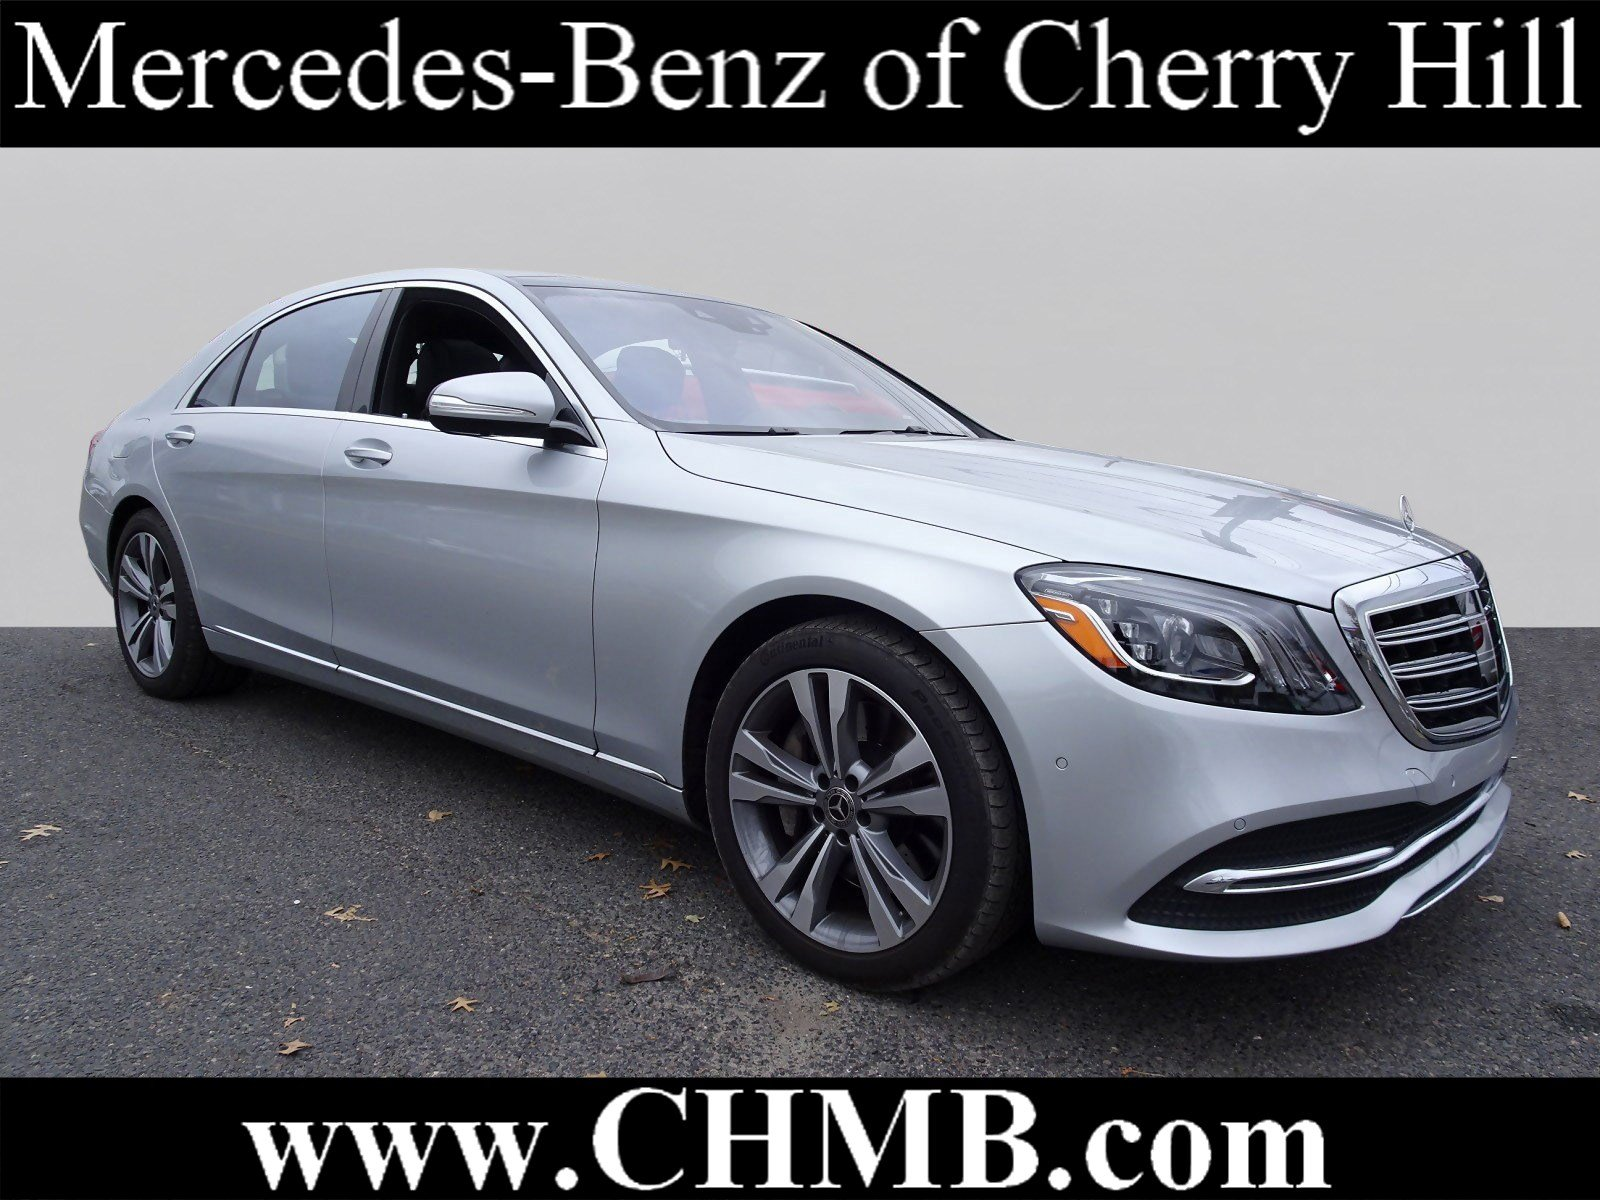 Certified Pre Owned 2018 Mercedes Benz S Class S 450 Sedan In Cherry